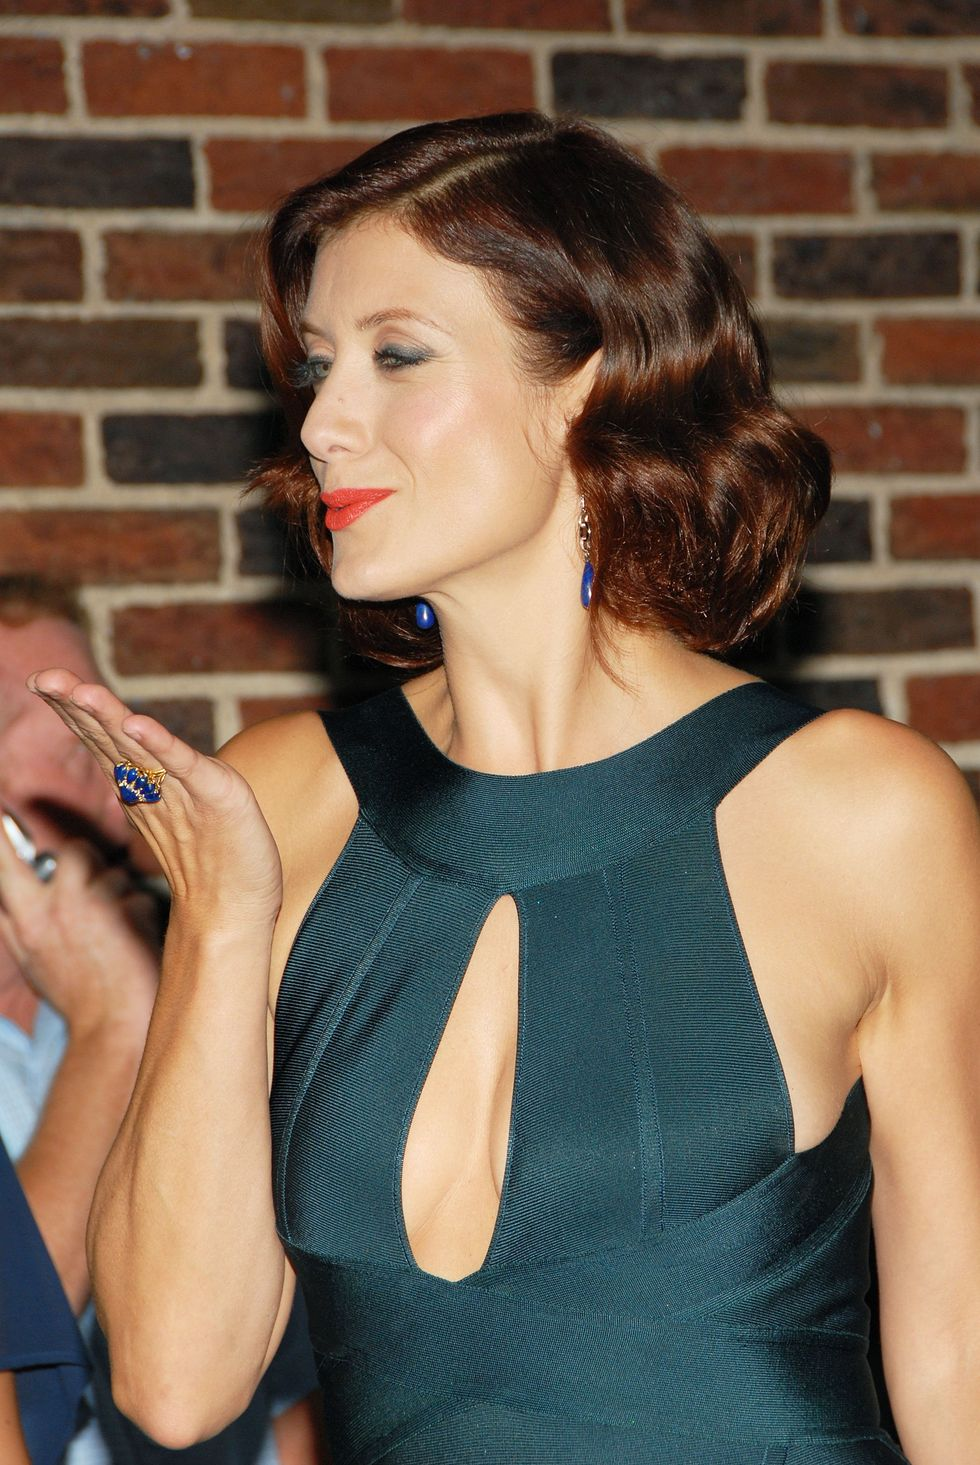 kate-walsh-arrives-at-the-late-show-with-david-letterman-in-new-york-city-07